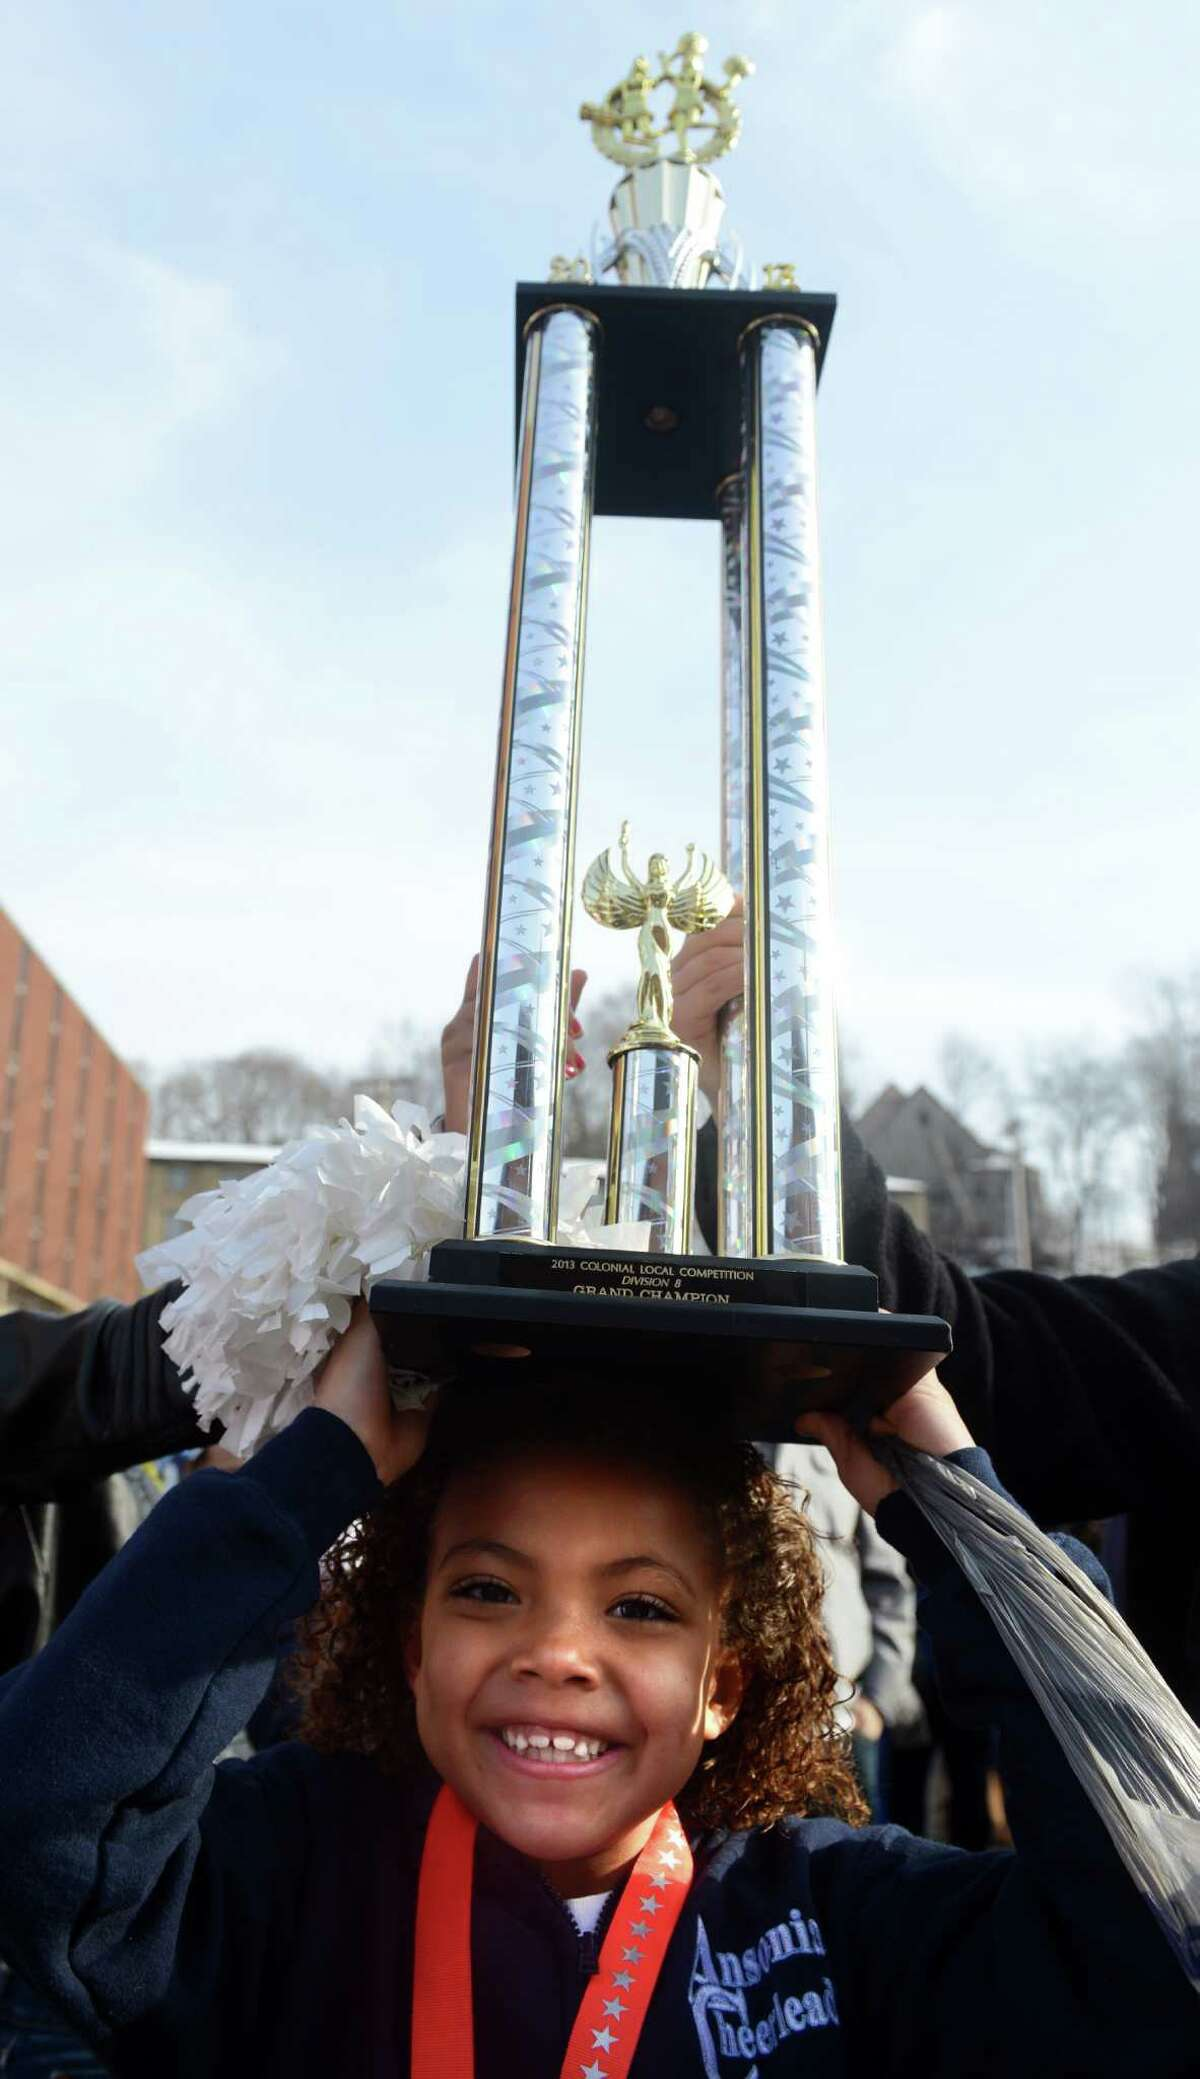 A parade to honor Class S state football champions, the Ansonia Chargers, and Ansonia Youth cheerleaders, AYC National Championship winners and runners-up, was held Saturday, Dec. 21, 2013 in downtown Ansonia, Conn.